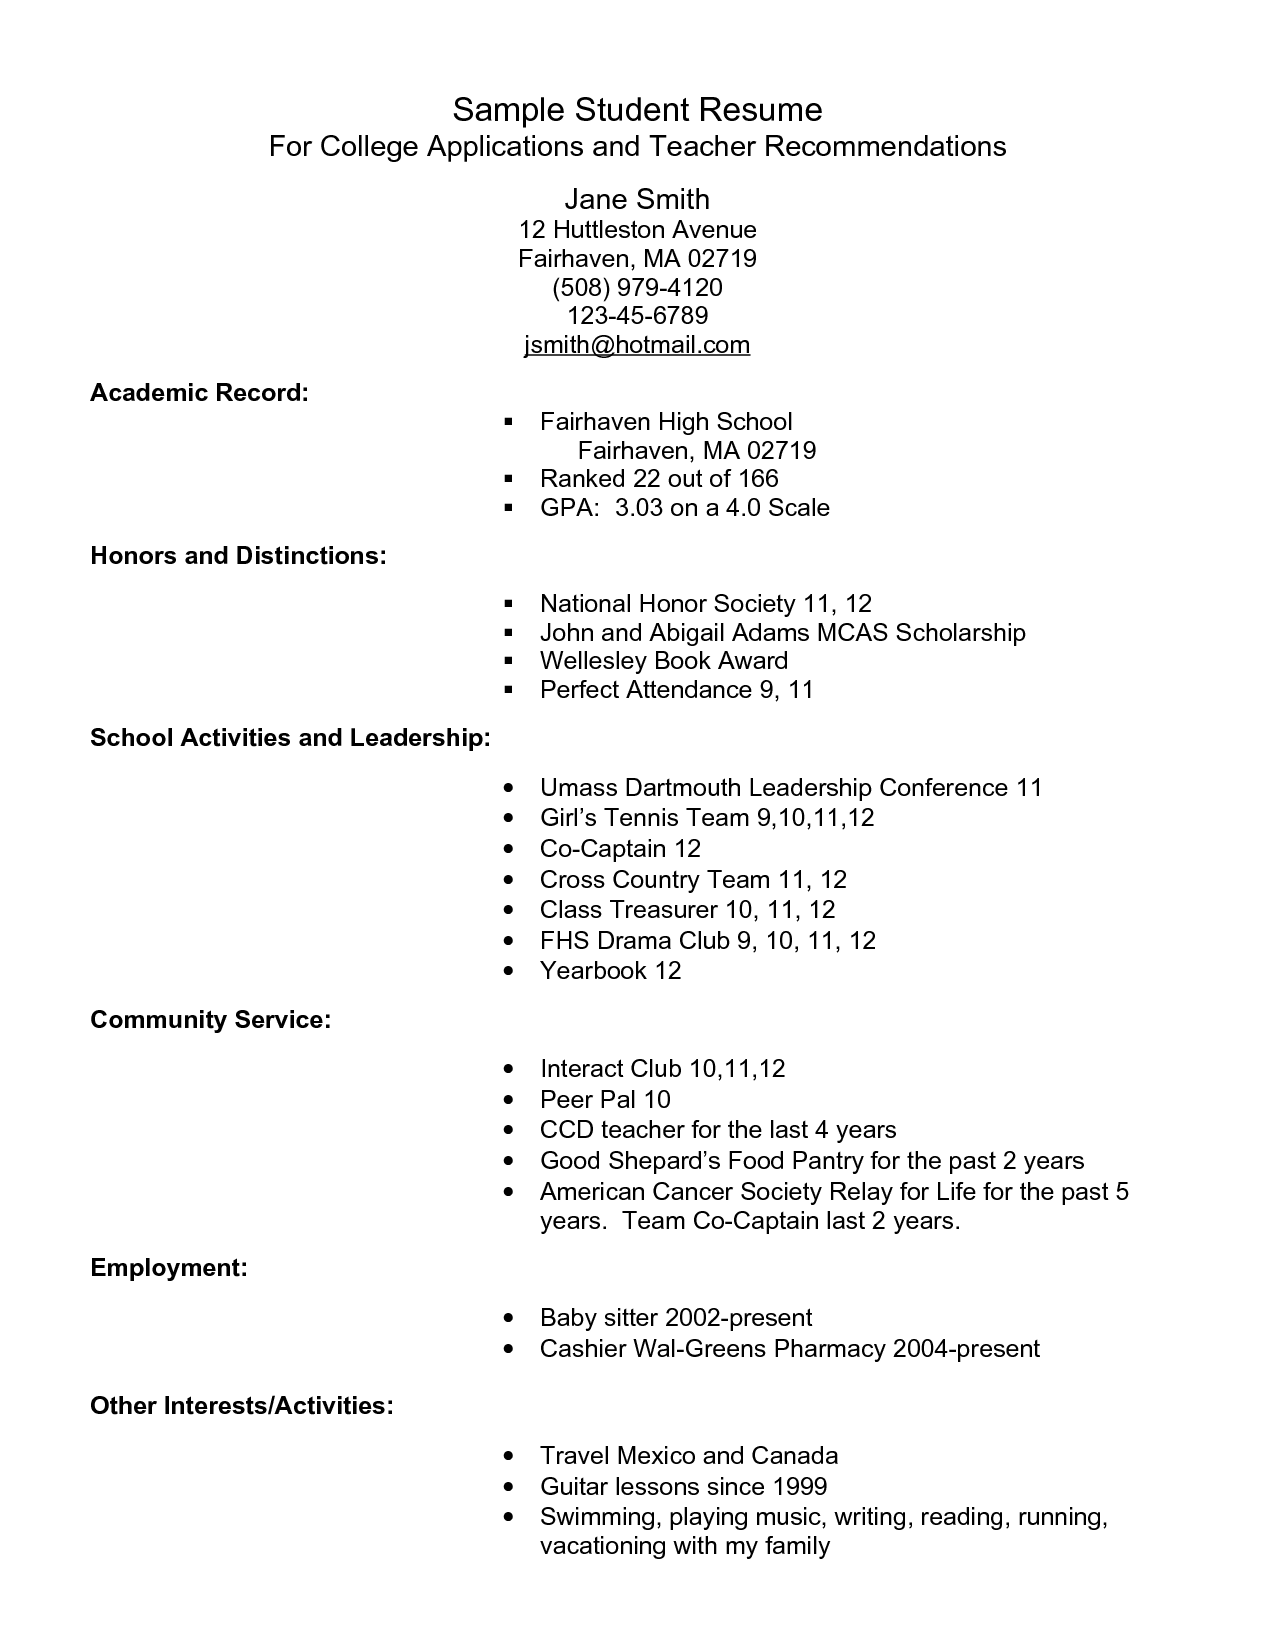 Resume Format College Student Example Resume For High School Students For College Applications